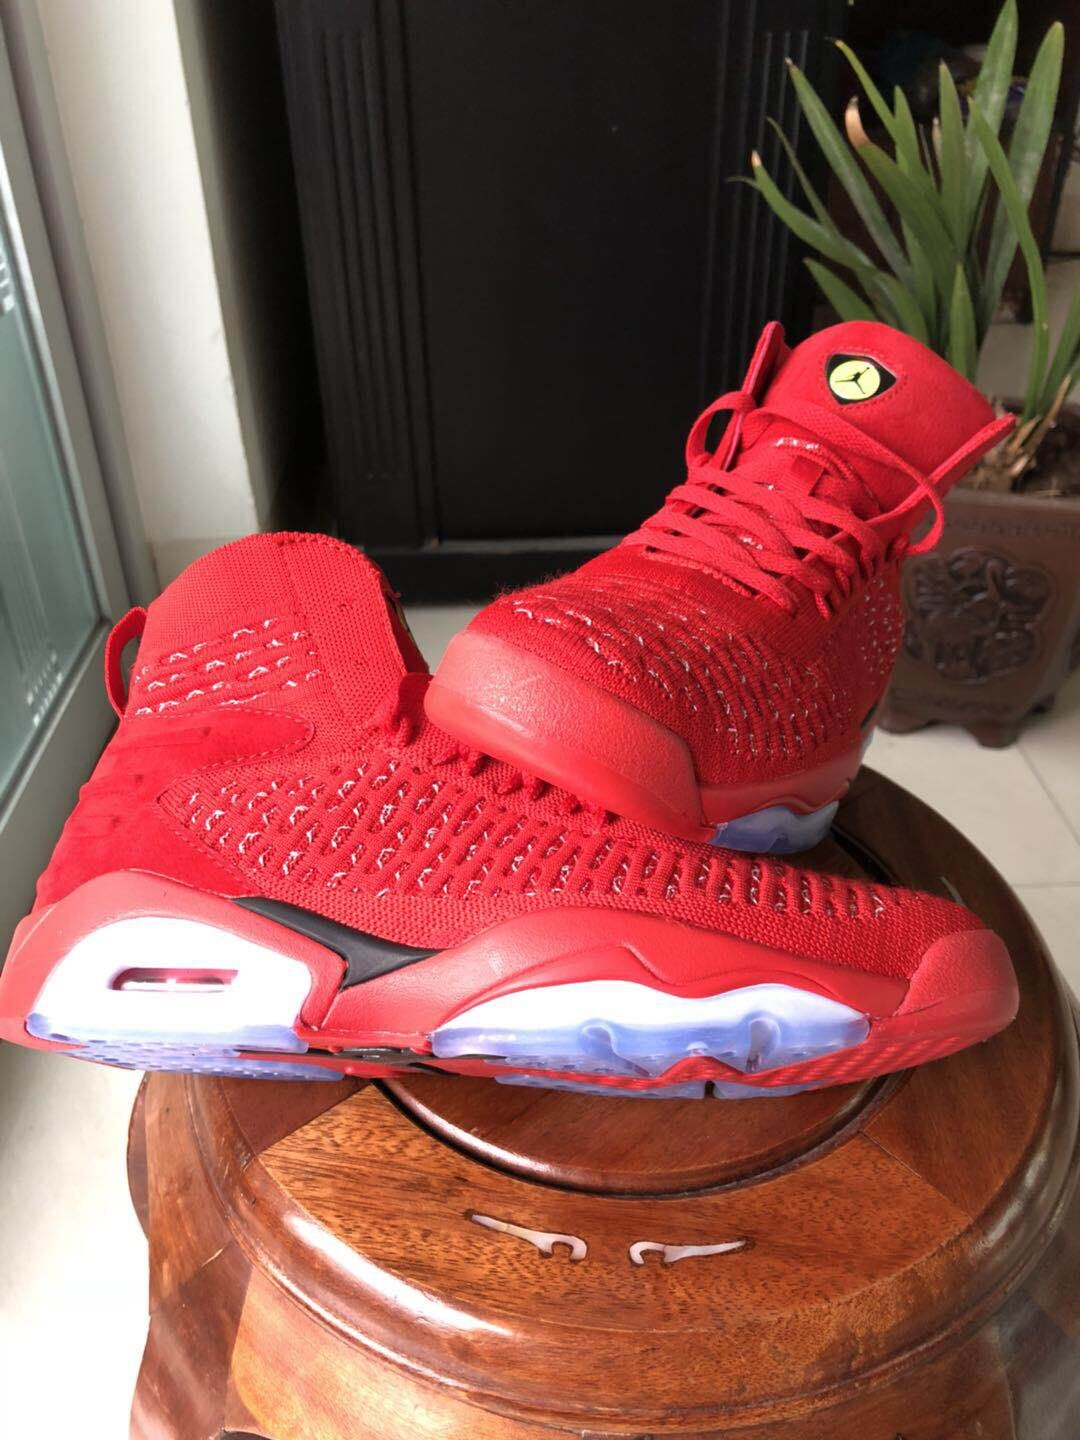 New Jordans 6 Weave All Red Shoes For Sale